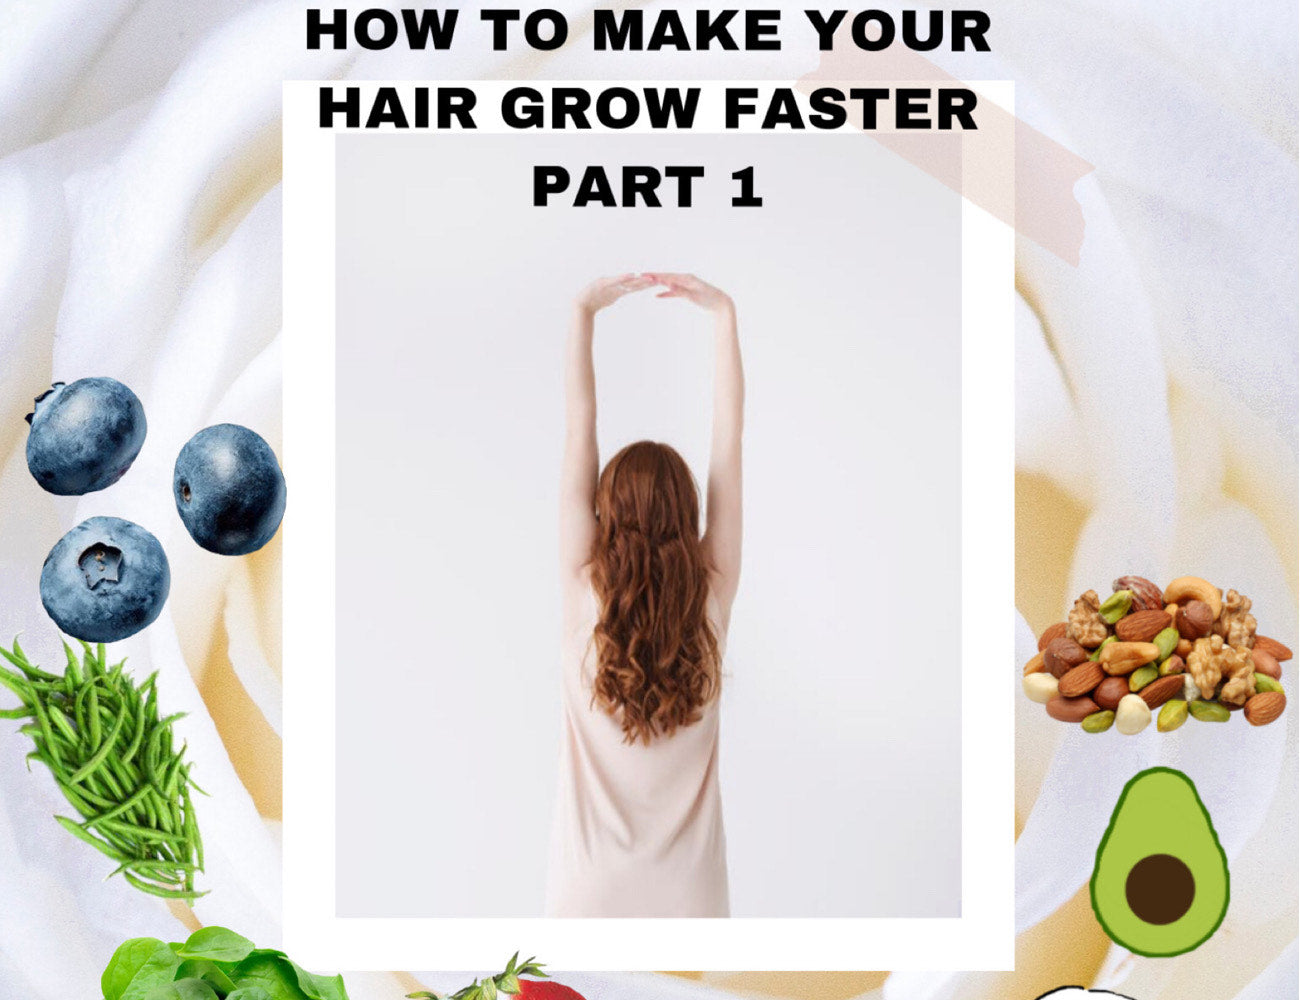 How To Make Your Hair Grow Faster Part 1